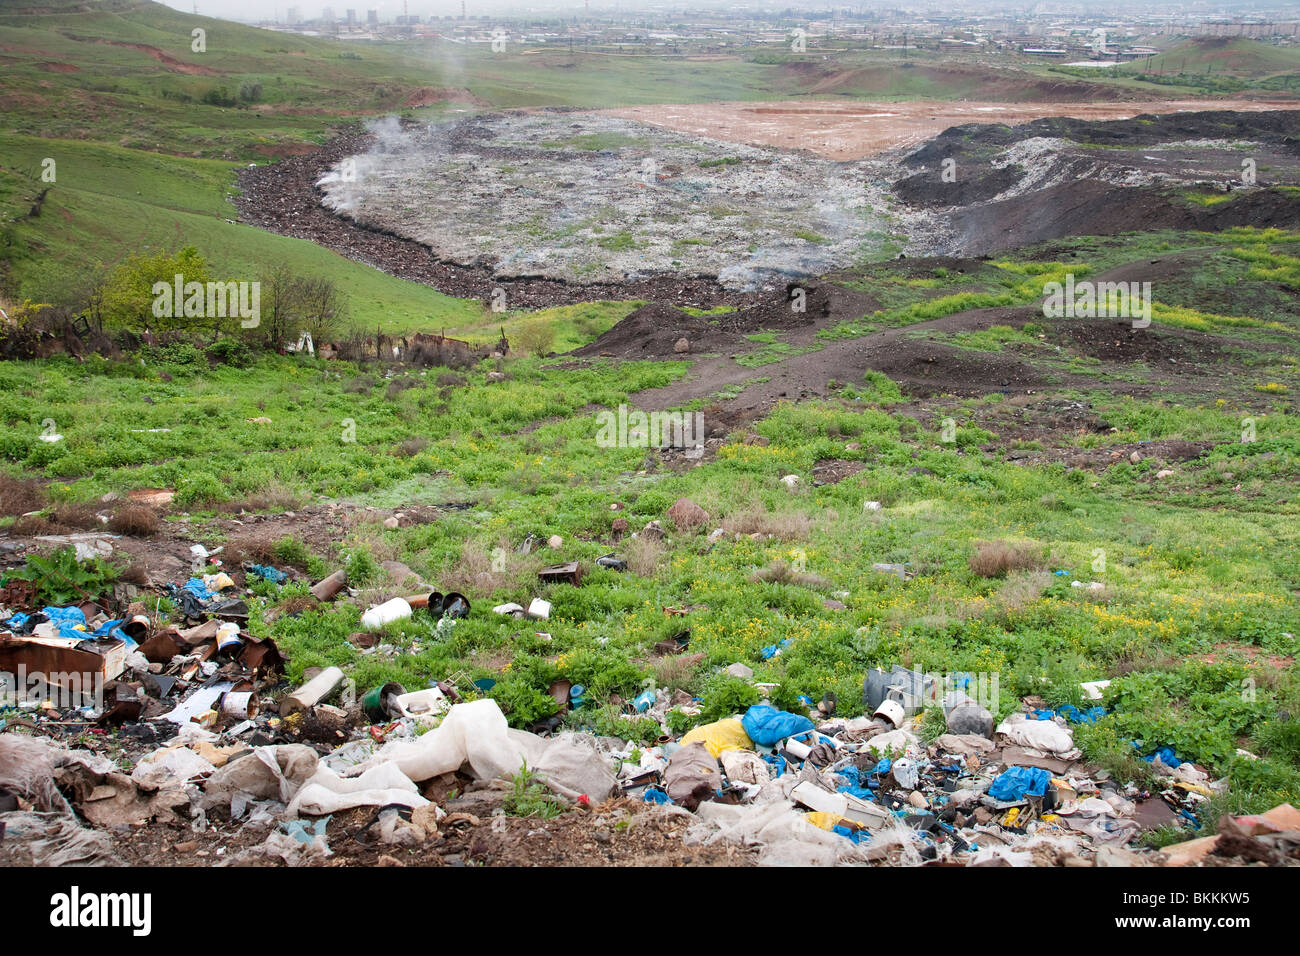 Methane gas processing landfill area in Republic of  Armenia where the landfill always smokes itself - Stock Image